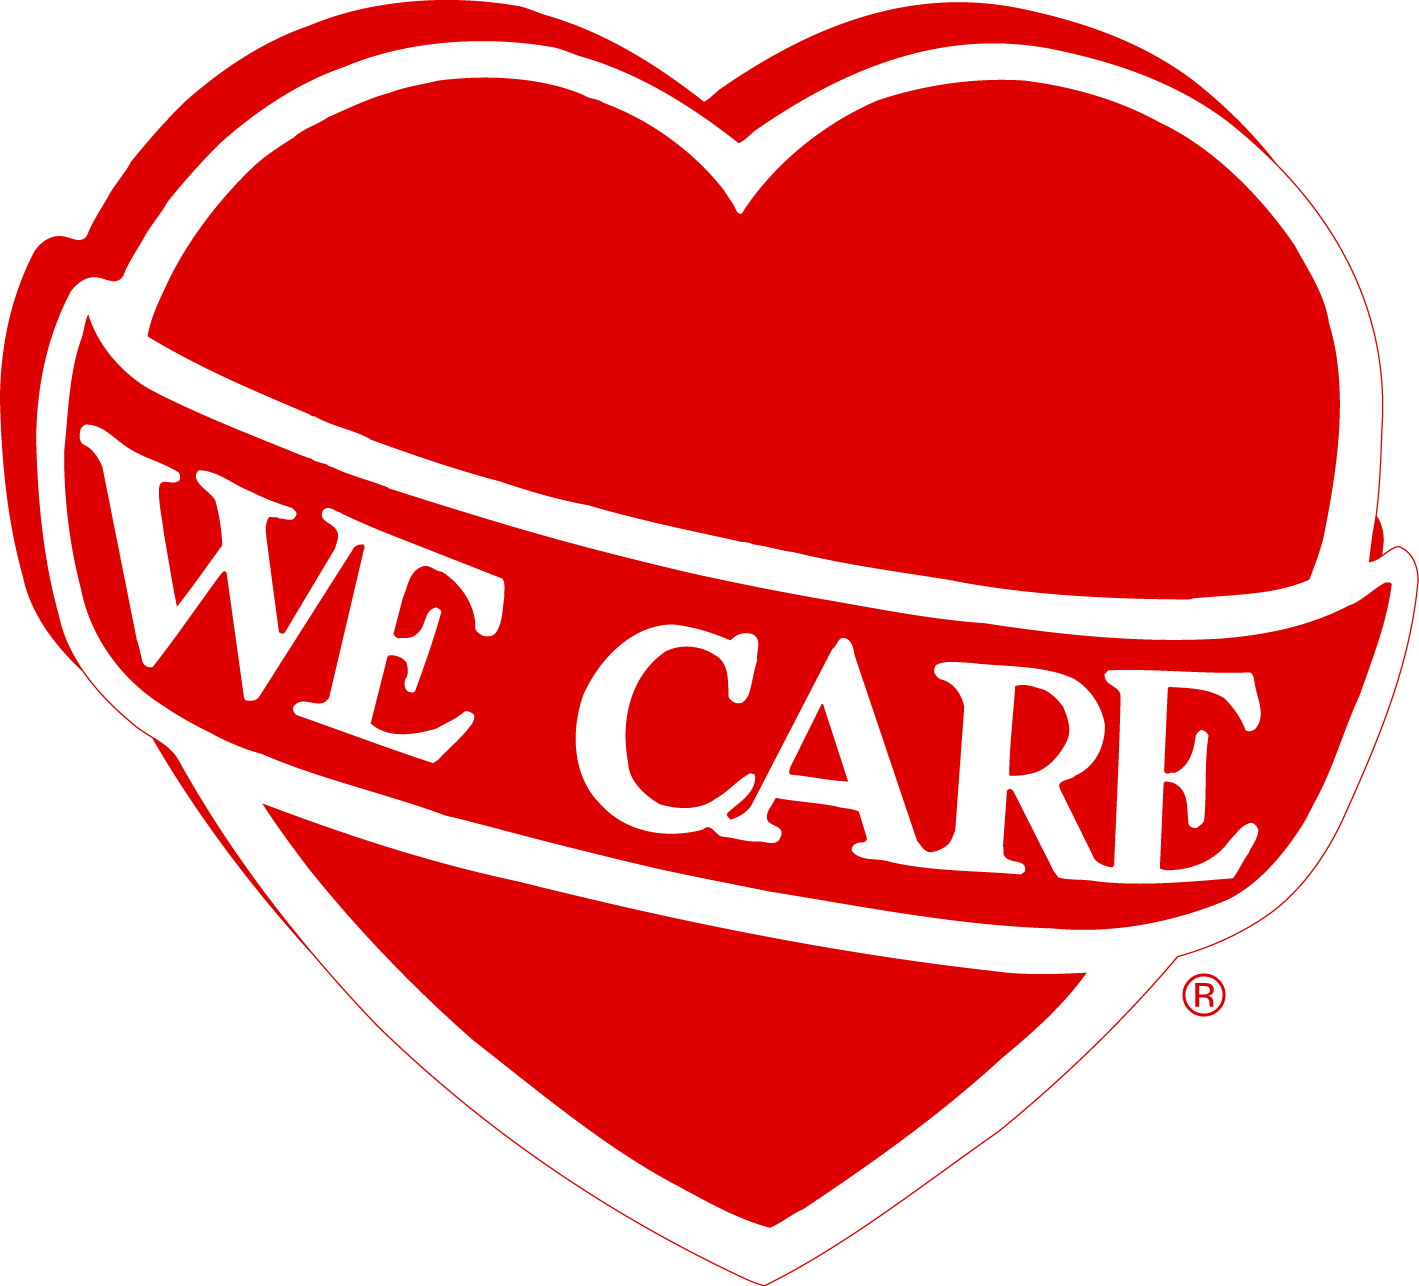 Upcoming We Care Events